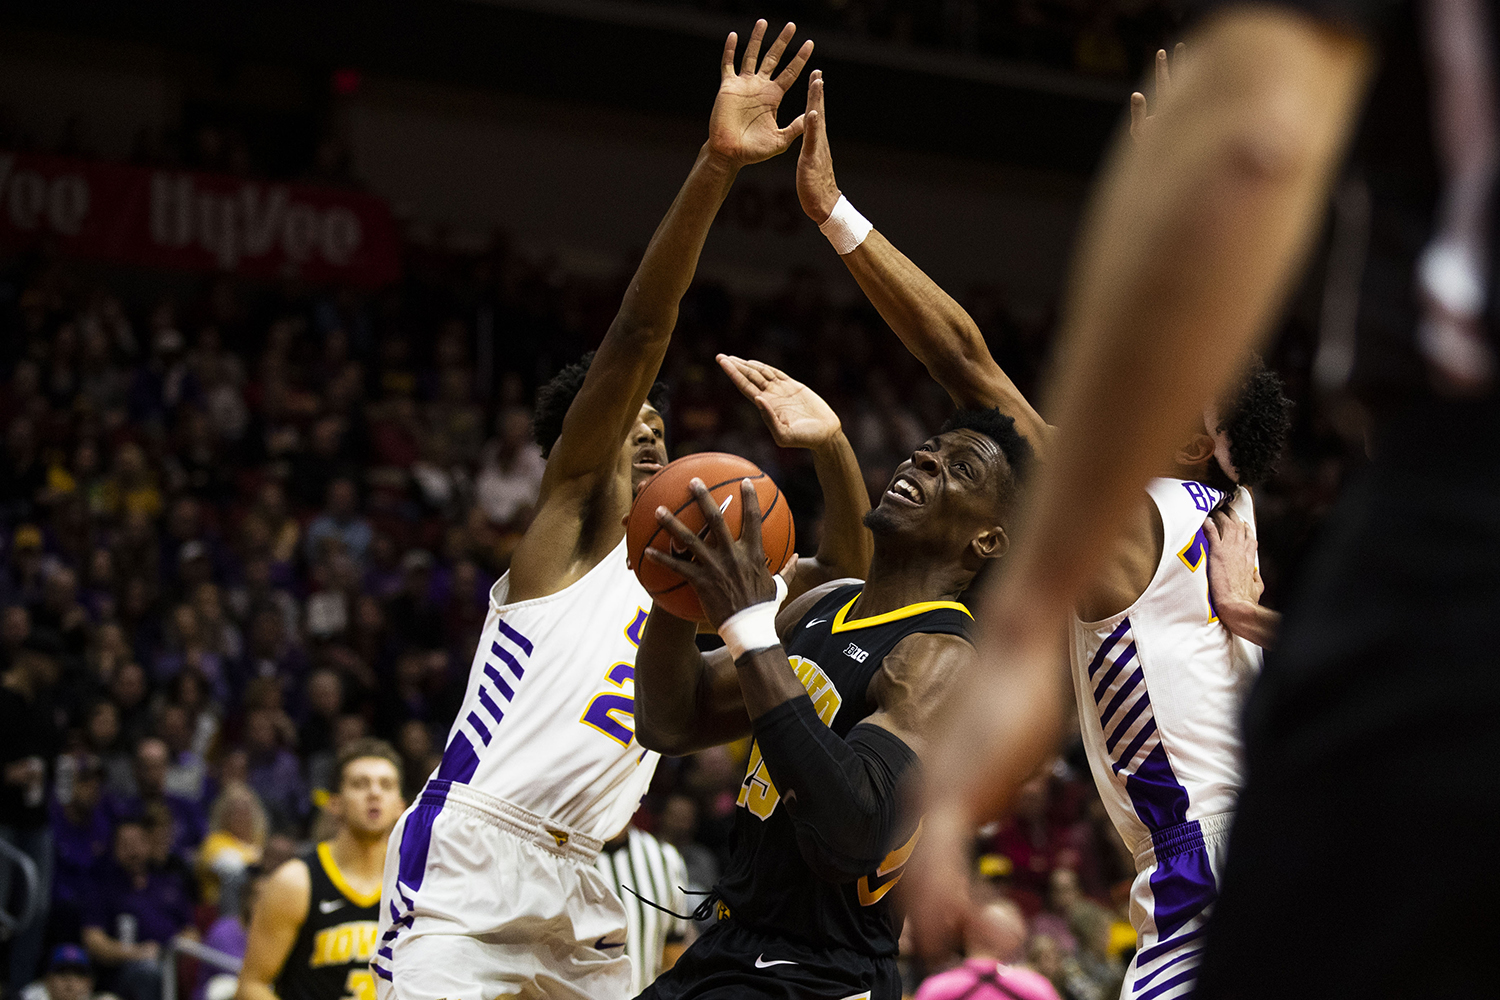 Iowa forward Tyler Cook fights for control of the ball during the Iowa/UNI men's basketball game at Wells Fargo Arena in Des Moines on Saturday, Dec. 15, 2018. The Hawkeyes defeated the Panthers, 77-54.